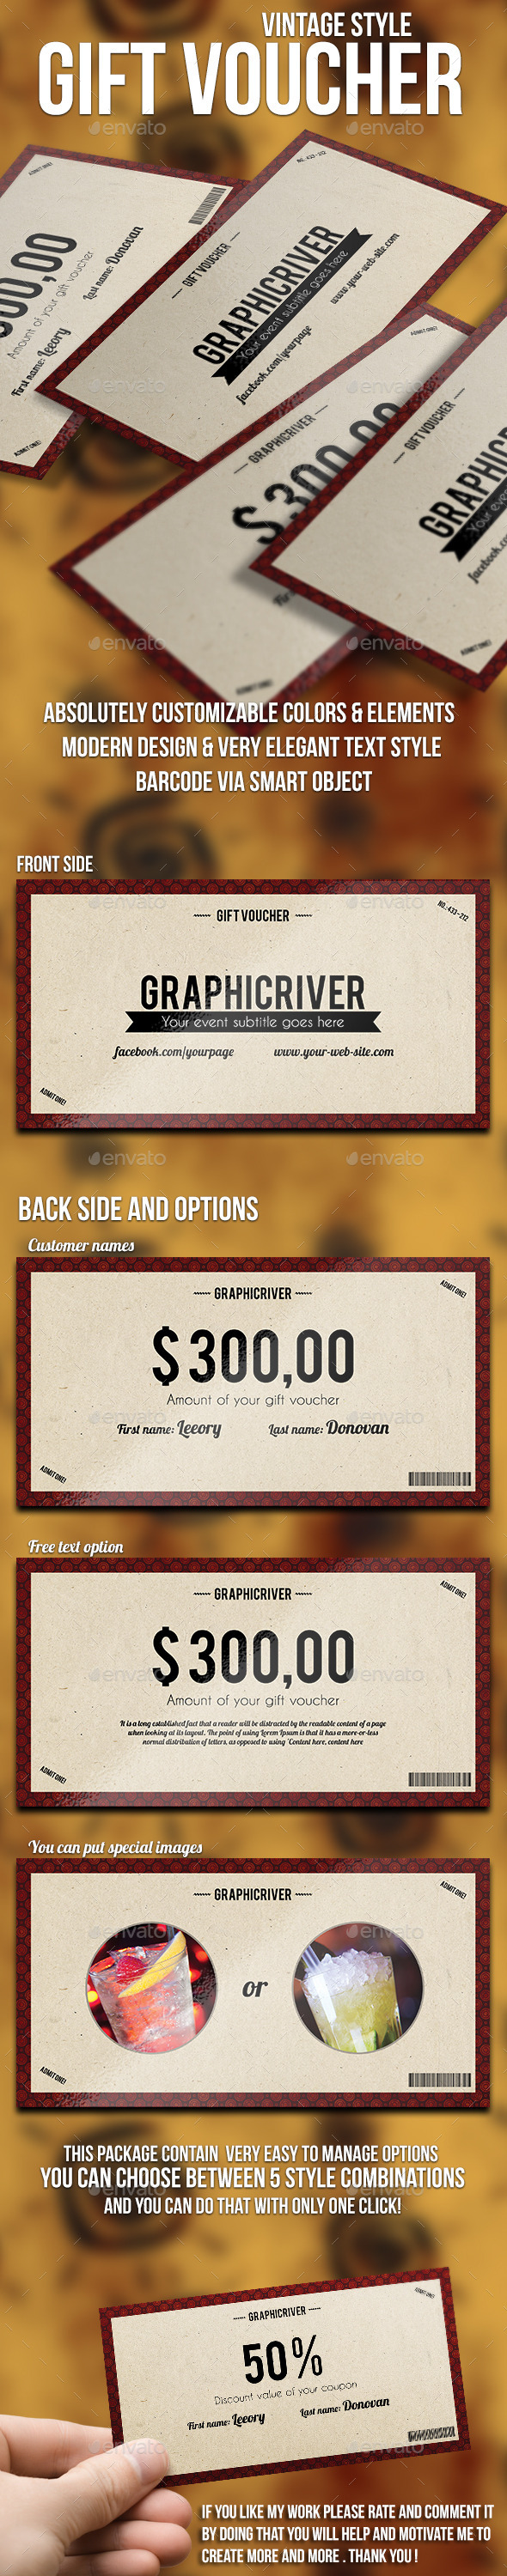 GraphicRiver Vintage Style Gift Voucher 10131490